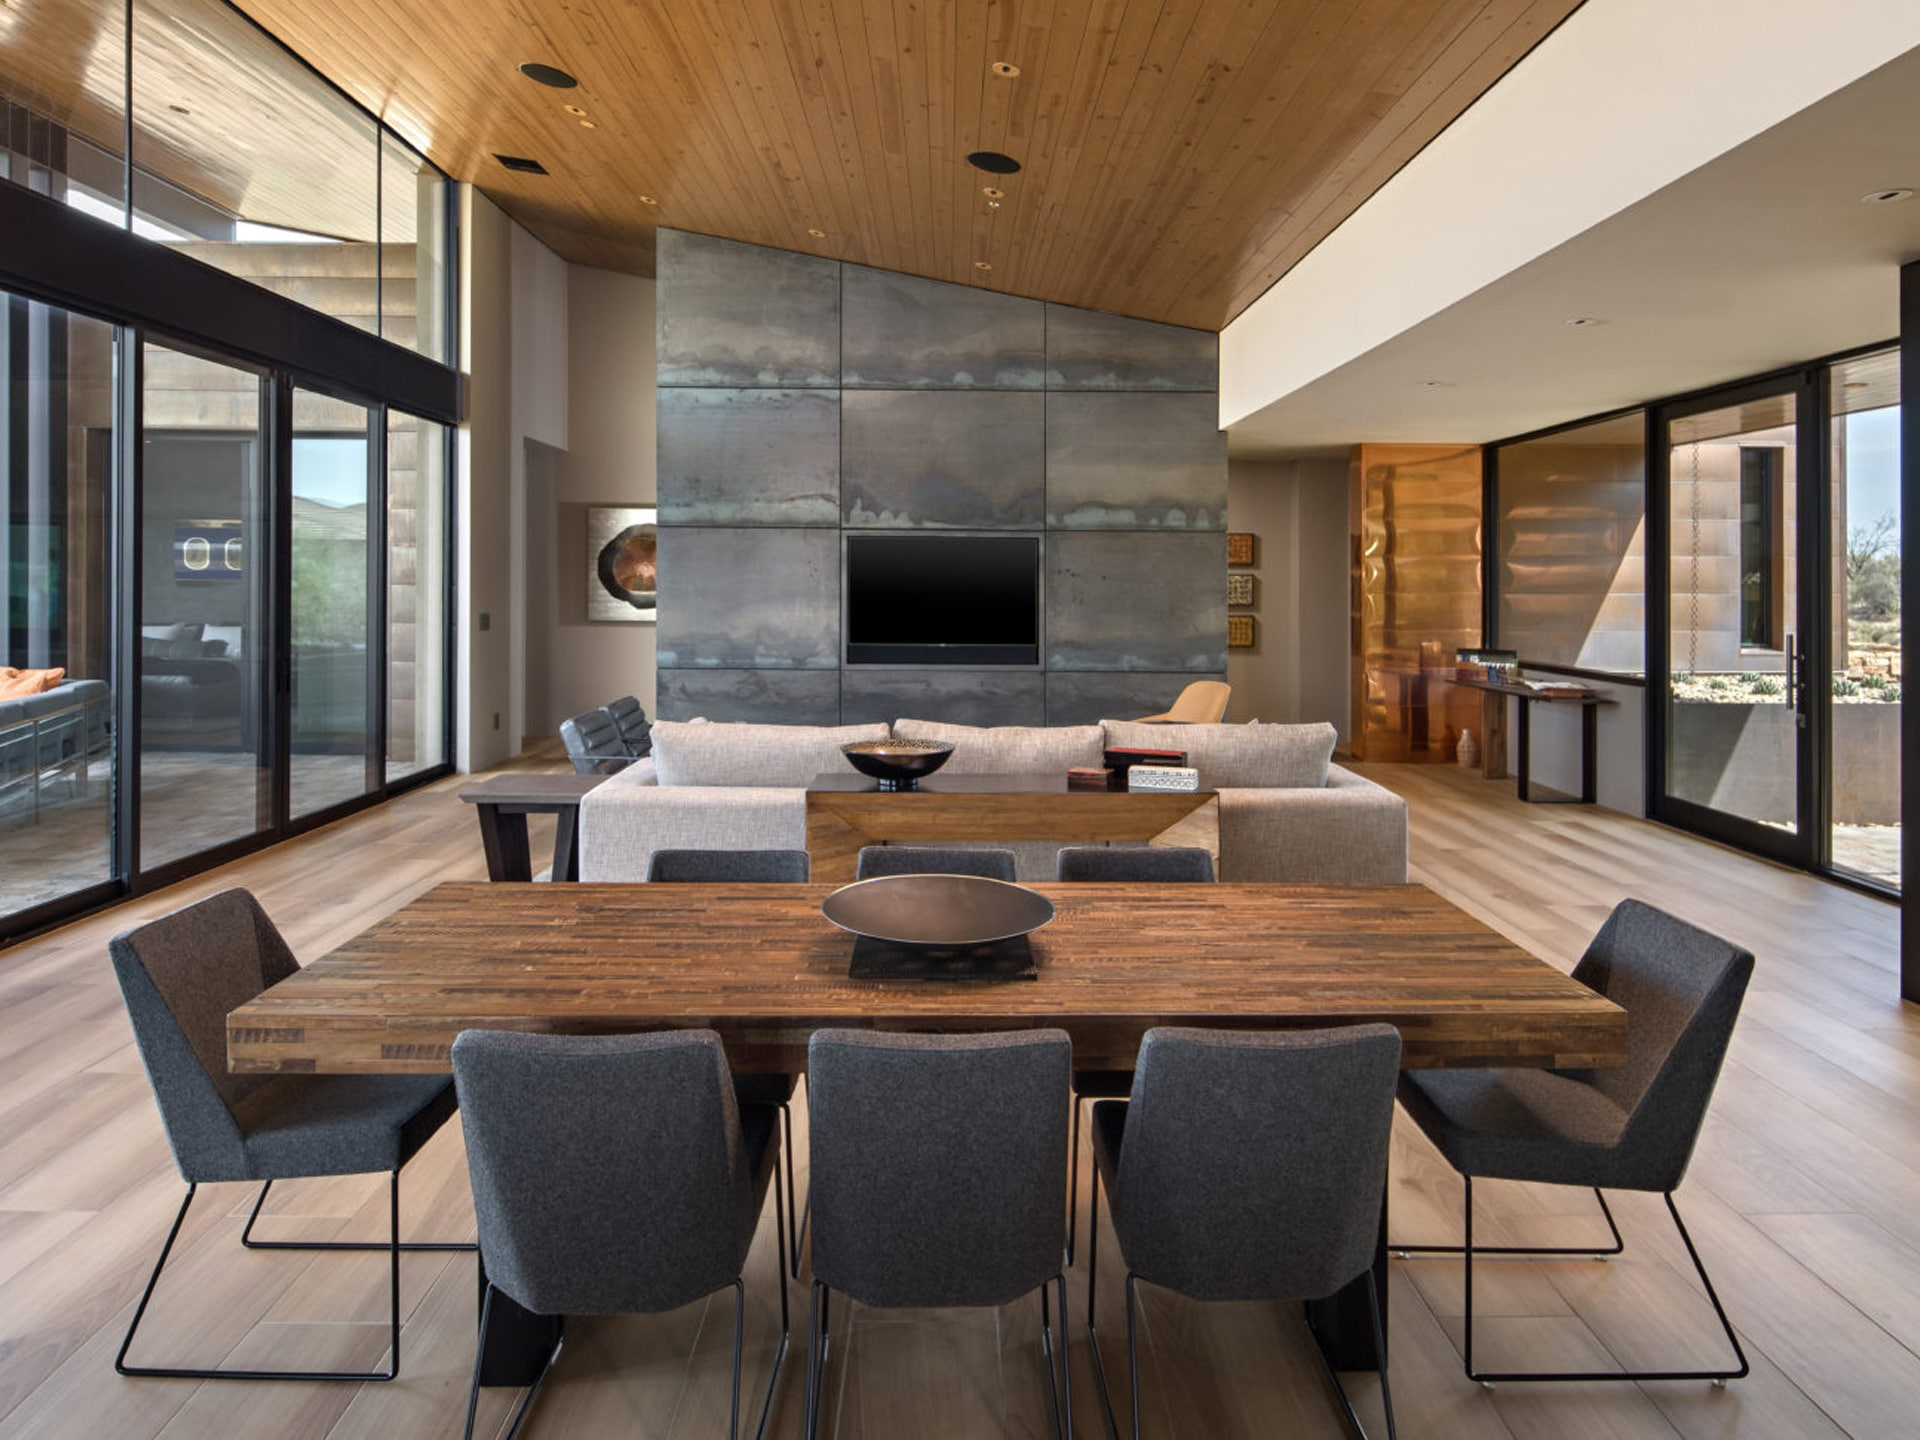 Desert Mountain Home Combines Natural Materials and Metals